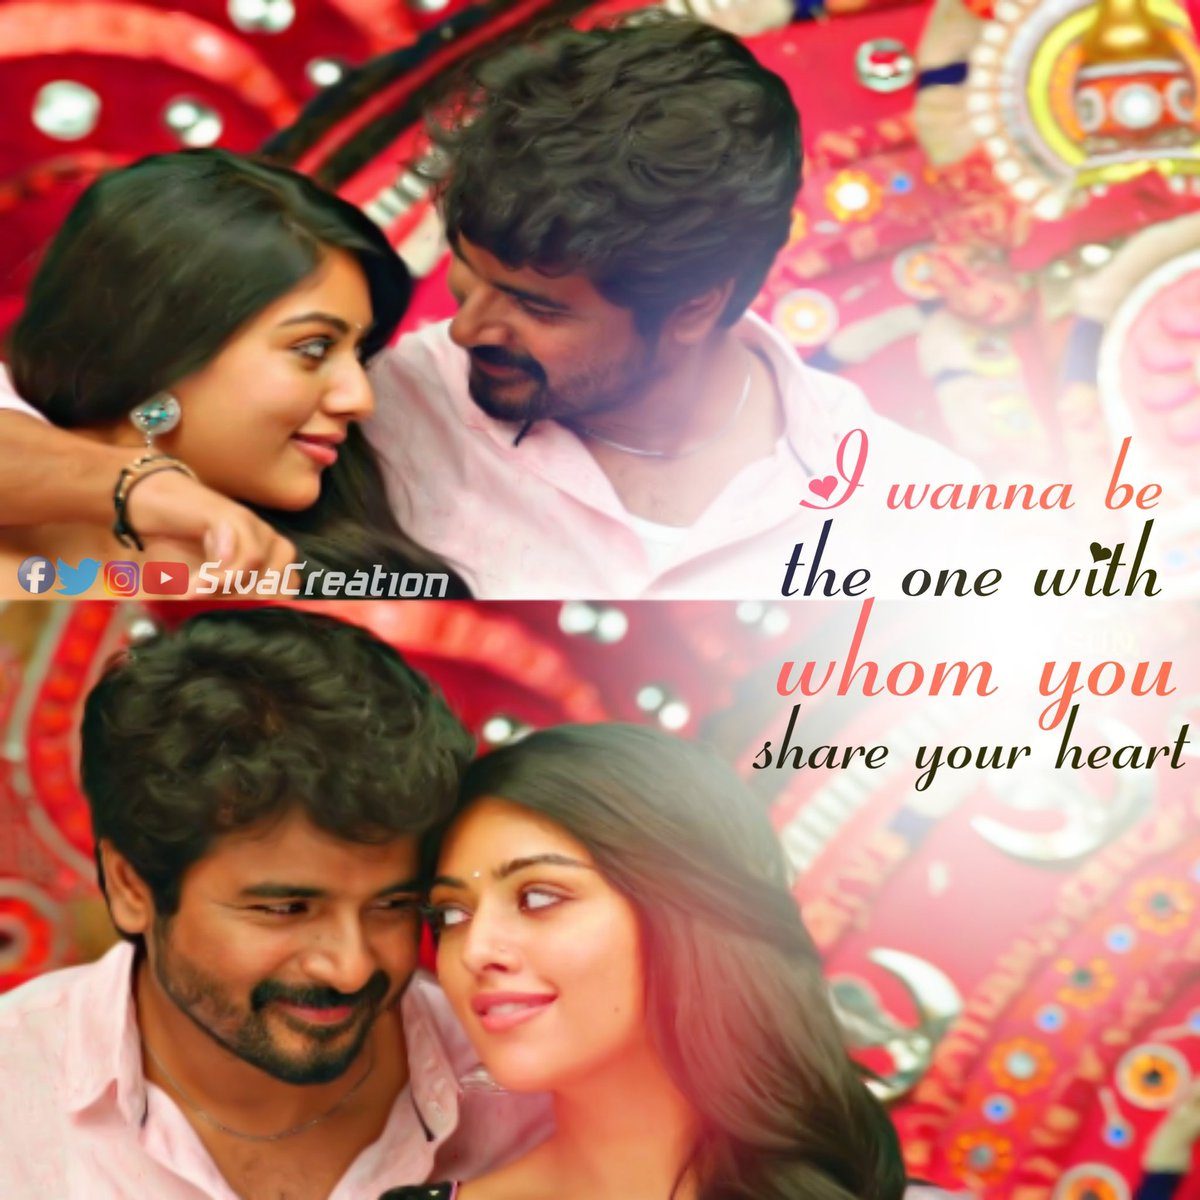 I wanna be the one with whom you share your heart   #SKLoveQuotes #LoveQuotes #Quotes #Sivakarthikeyan #NVPpic.twitter.com/XXxX6nAoGW